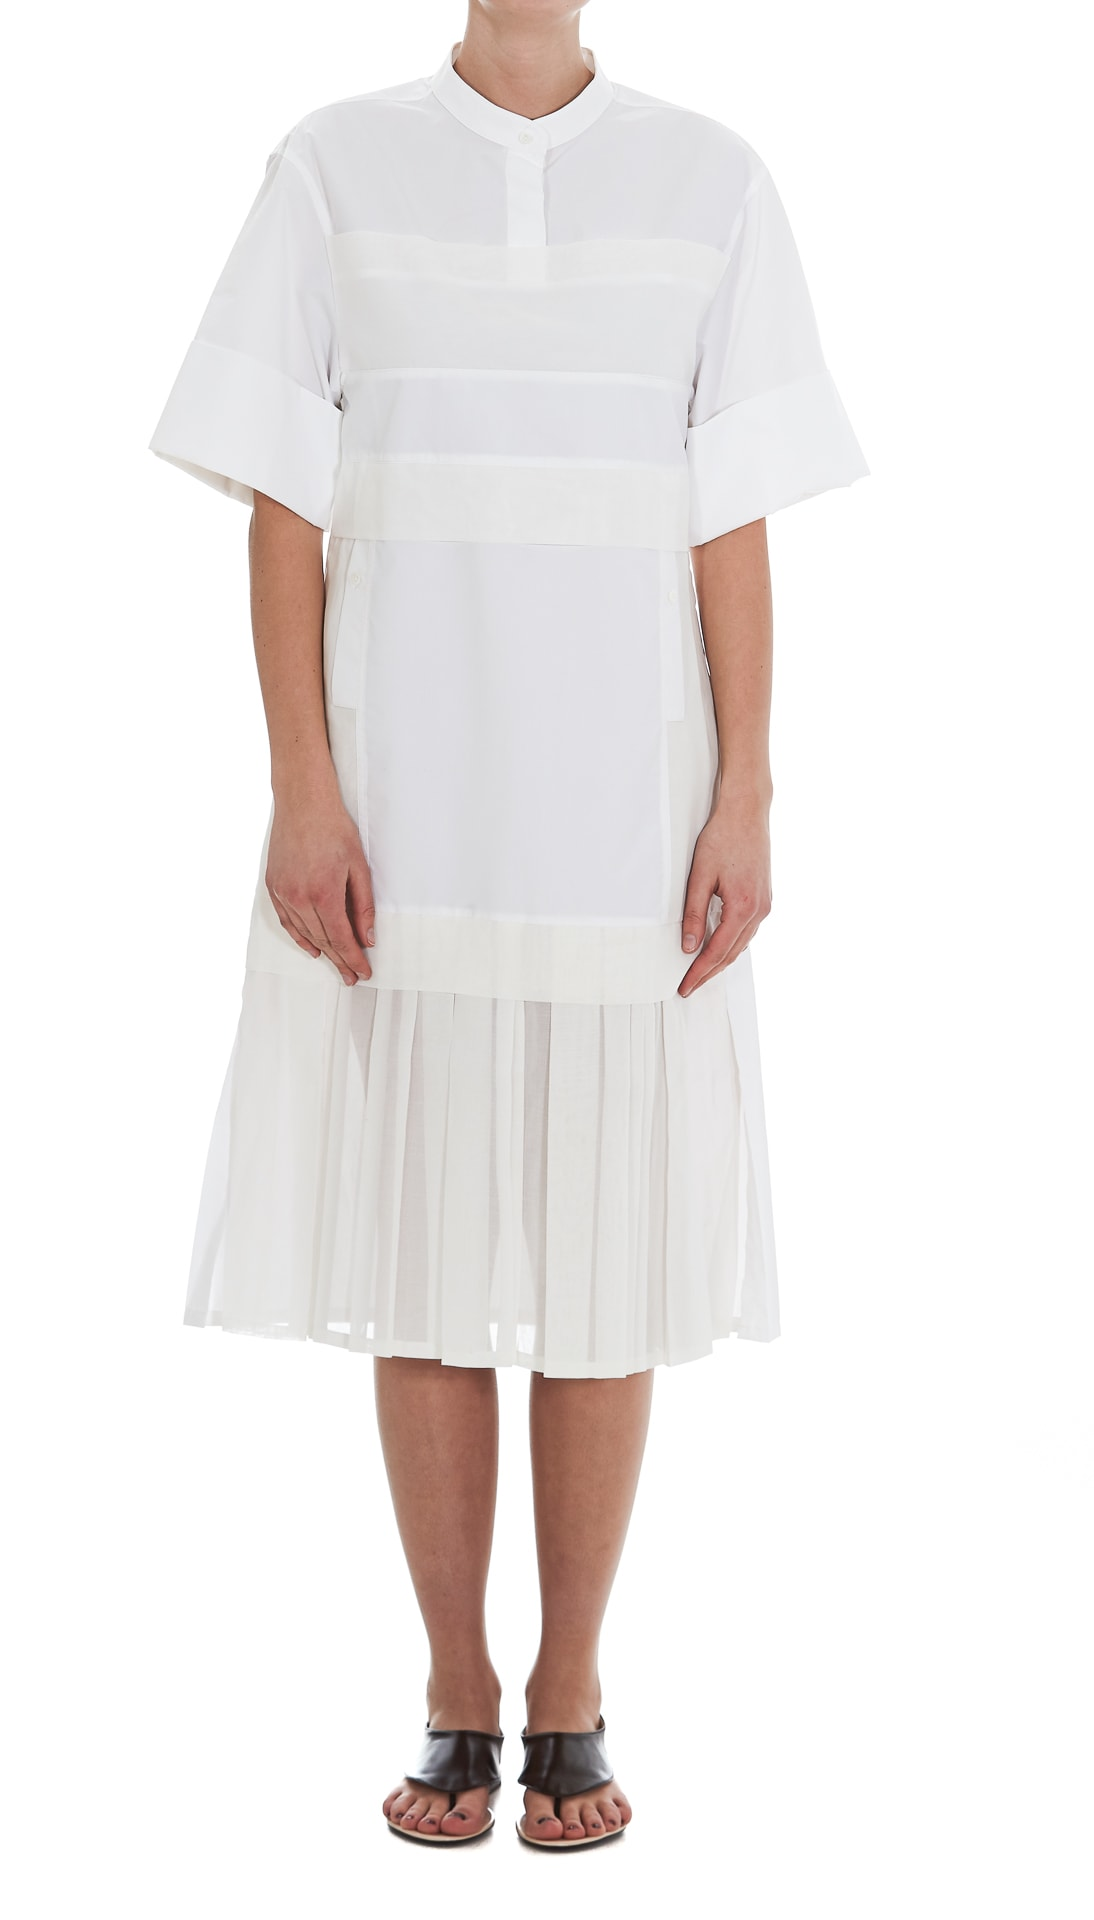 Buy 3.1 Phillip Lim Multimedia Dress online, shop 3.1 Phillip Lim with free shipping